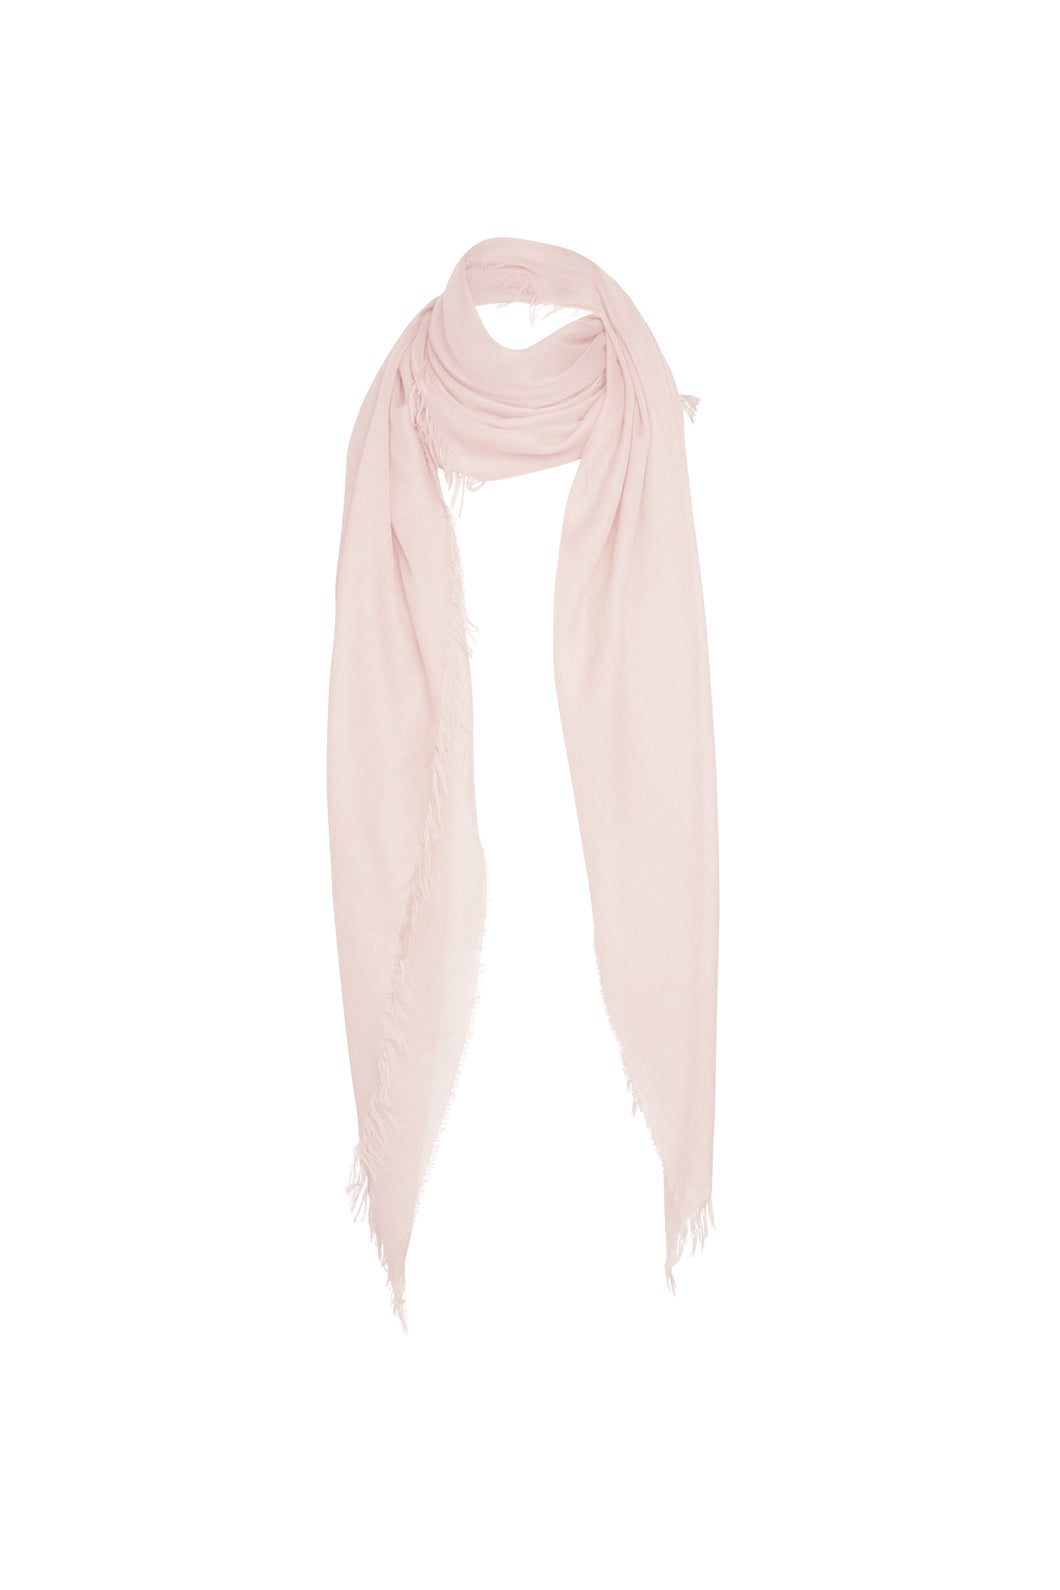 Florencia Cashmere Blend Shawl In Nude